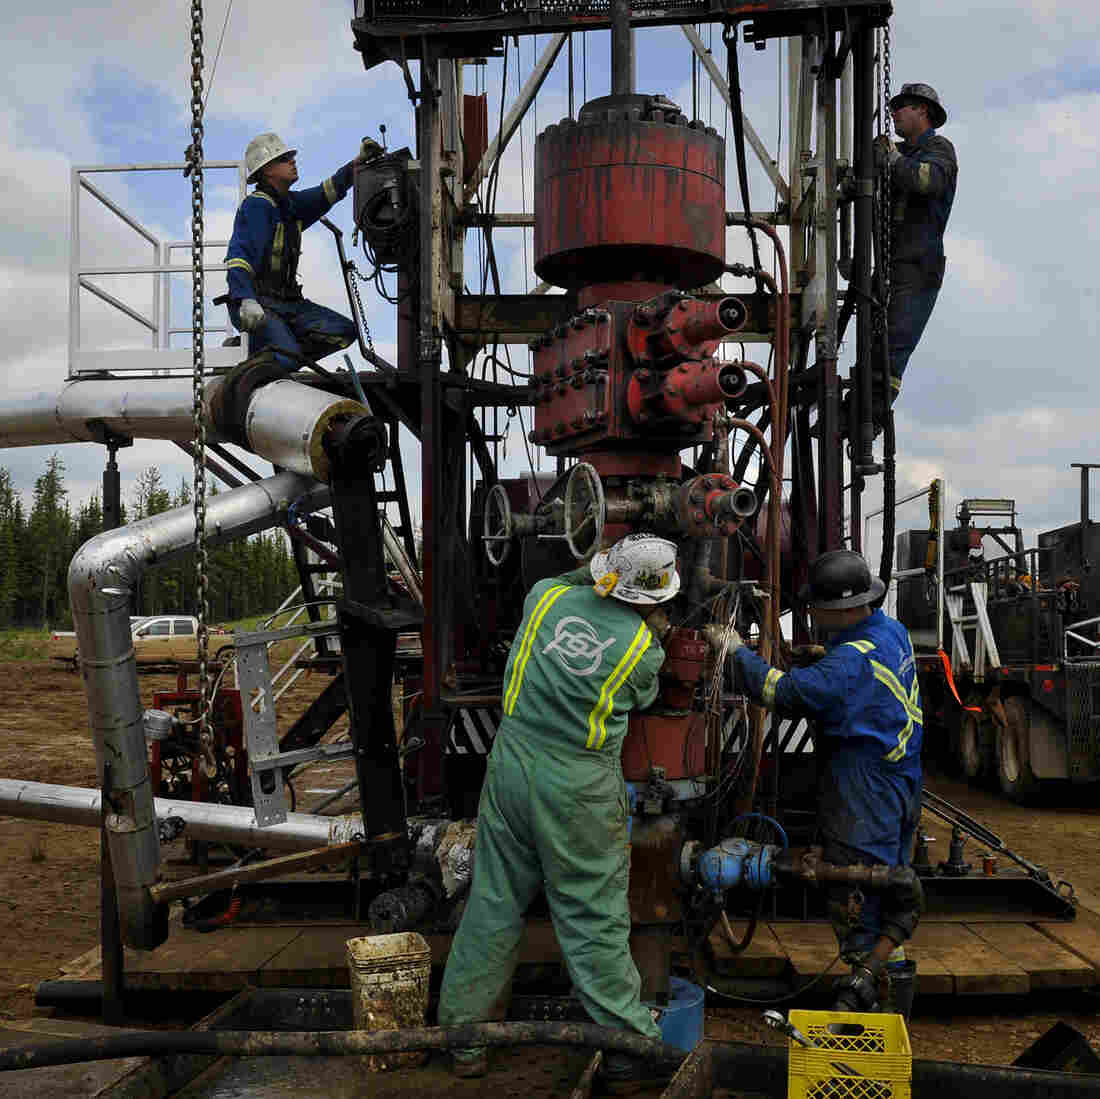 Roughnecks build a drilling rig at the MEG Energy site near Fort McMurray, Alberta, Canada. In addition to large, open-pit mining operations, tar sands oil can be extracted from the ground by pumping down high-pressure steam.